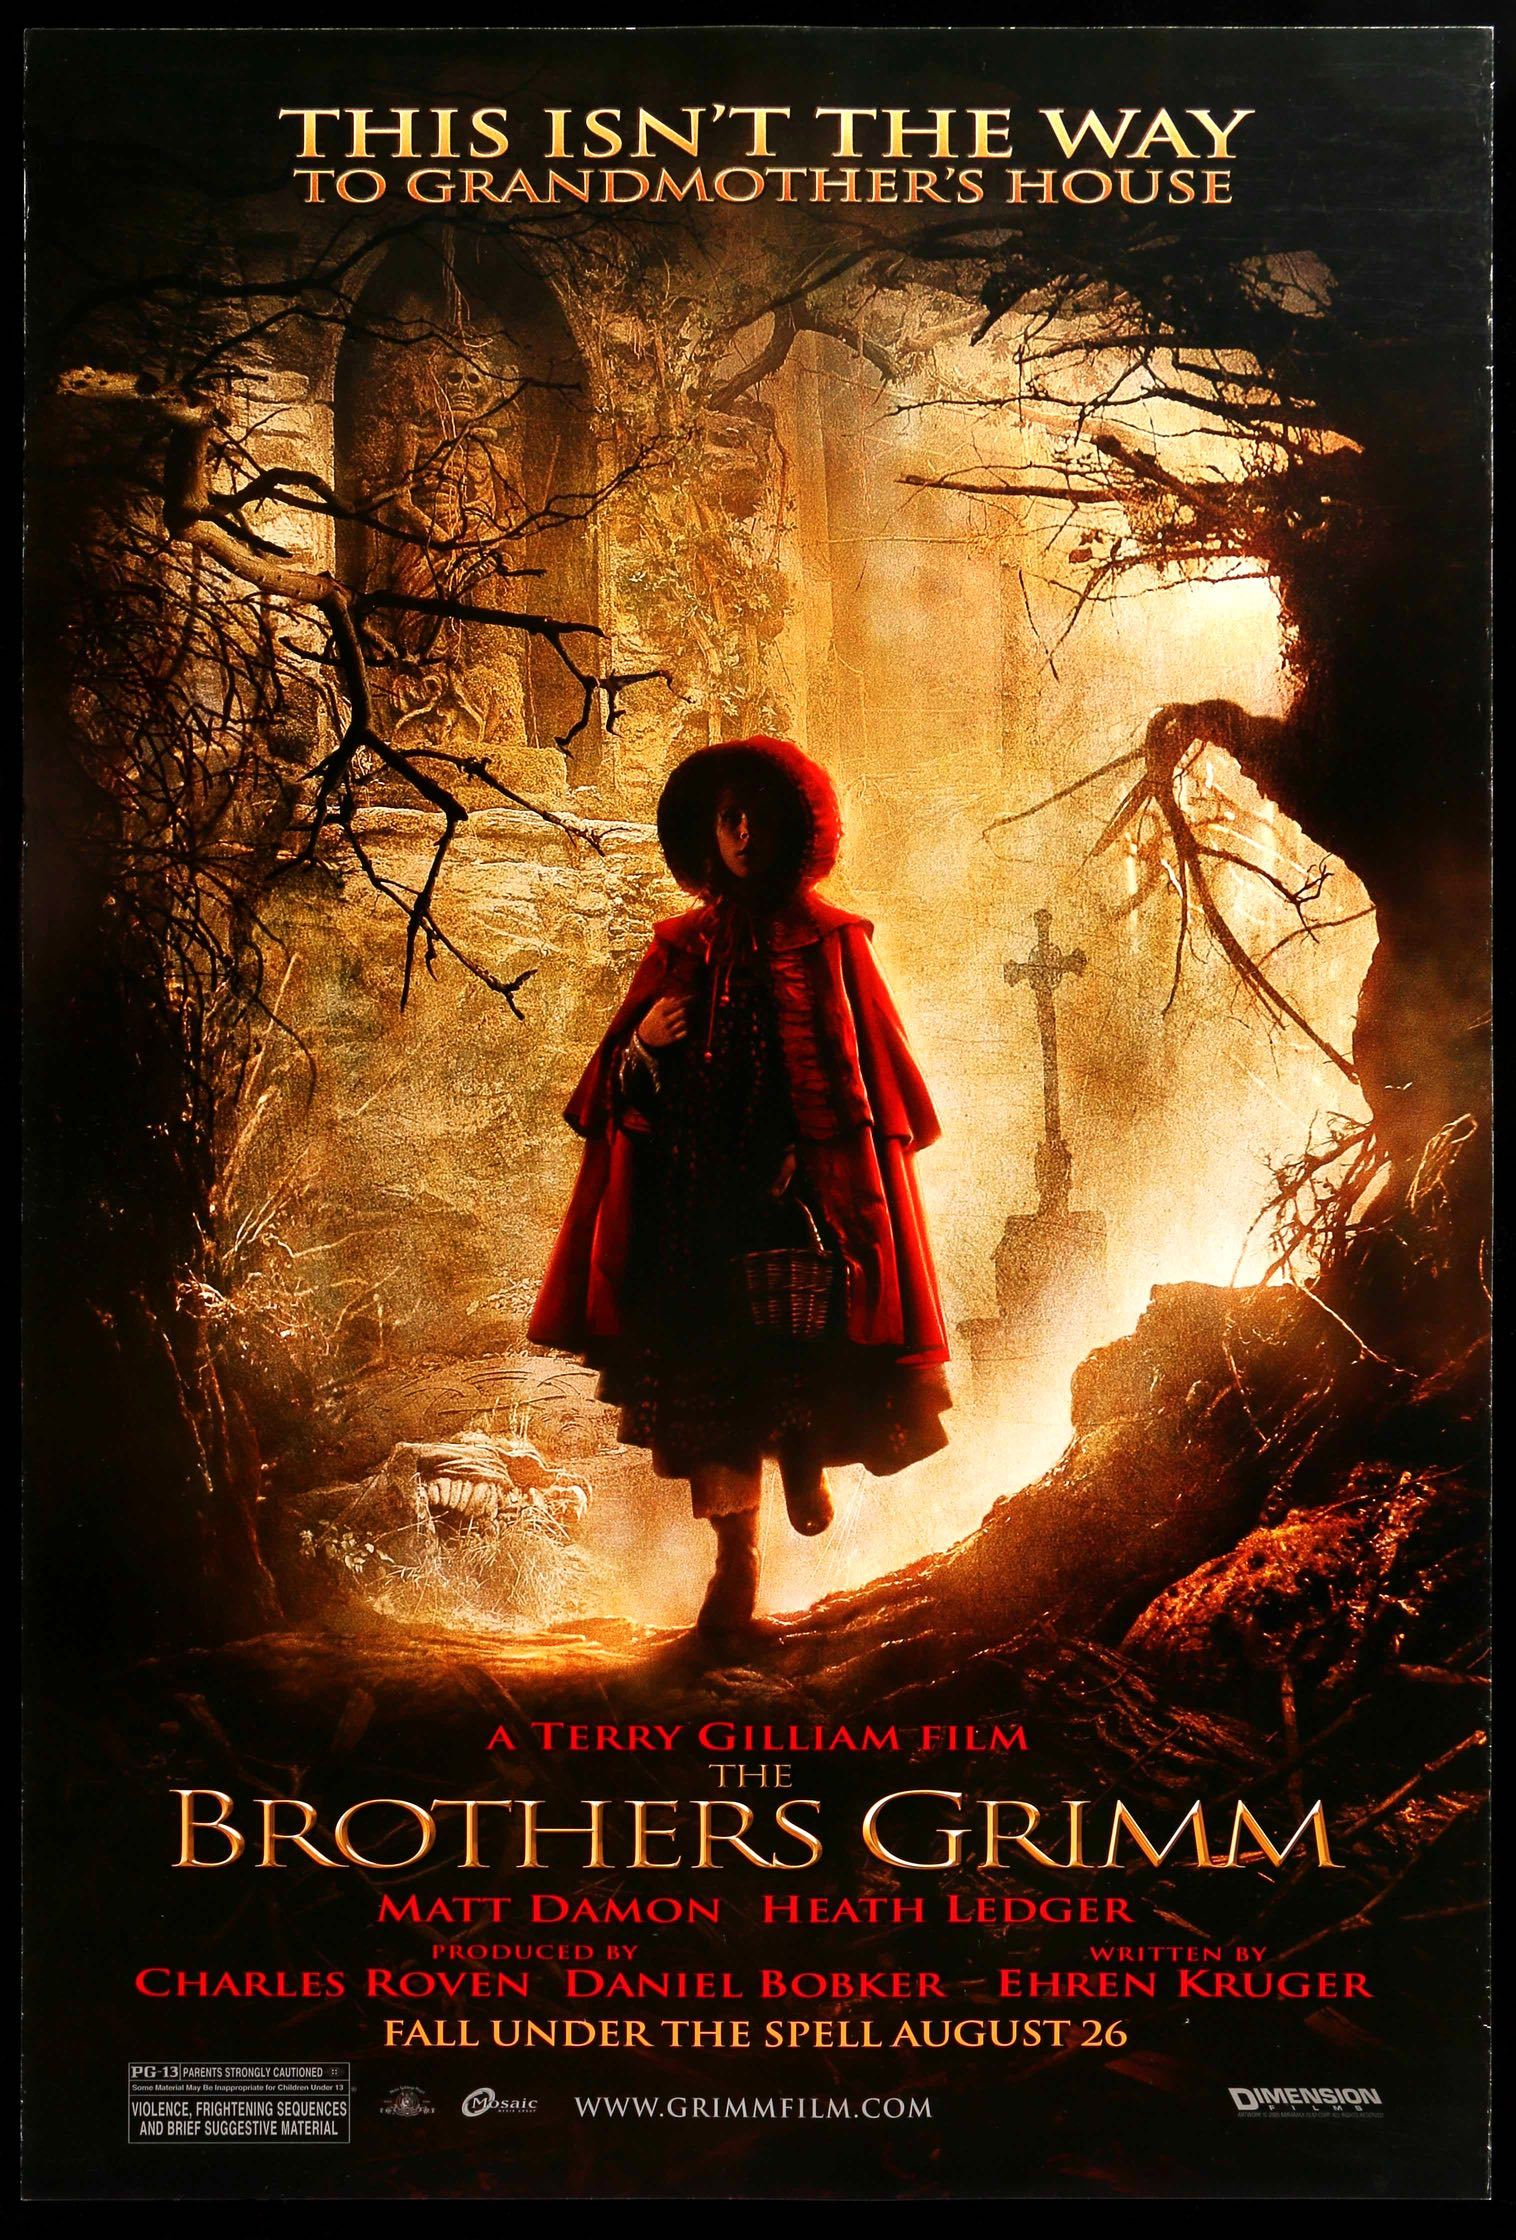 The Brothers Grimm (2005) - Directed By: Terry GilliamStarring: Matt Damon, Heath Ledger, Lena Headey, Peter Stormare, Jonathan PryceRated: PG13Run Time: 1h 58mTMM Score: 3Strengths: Unique High Concept, Some LaughsWeakness: Dialogue, CGI